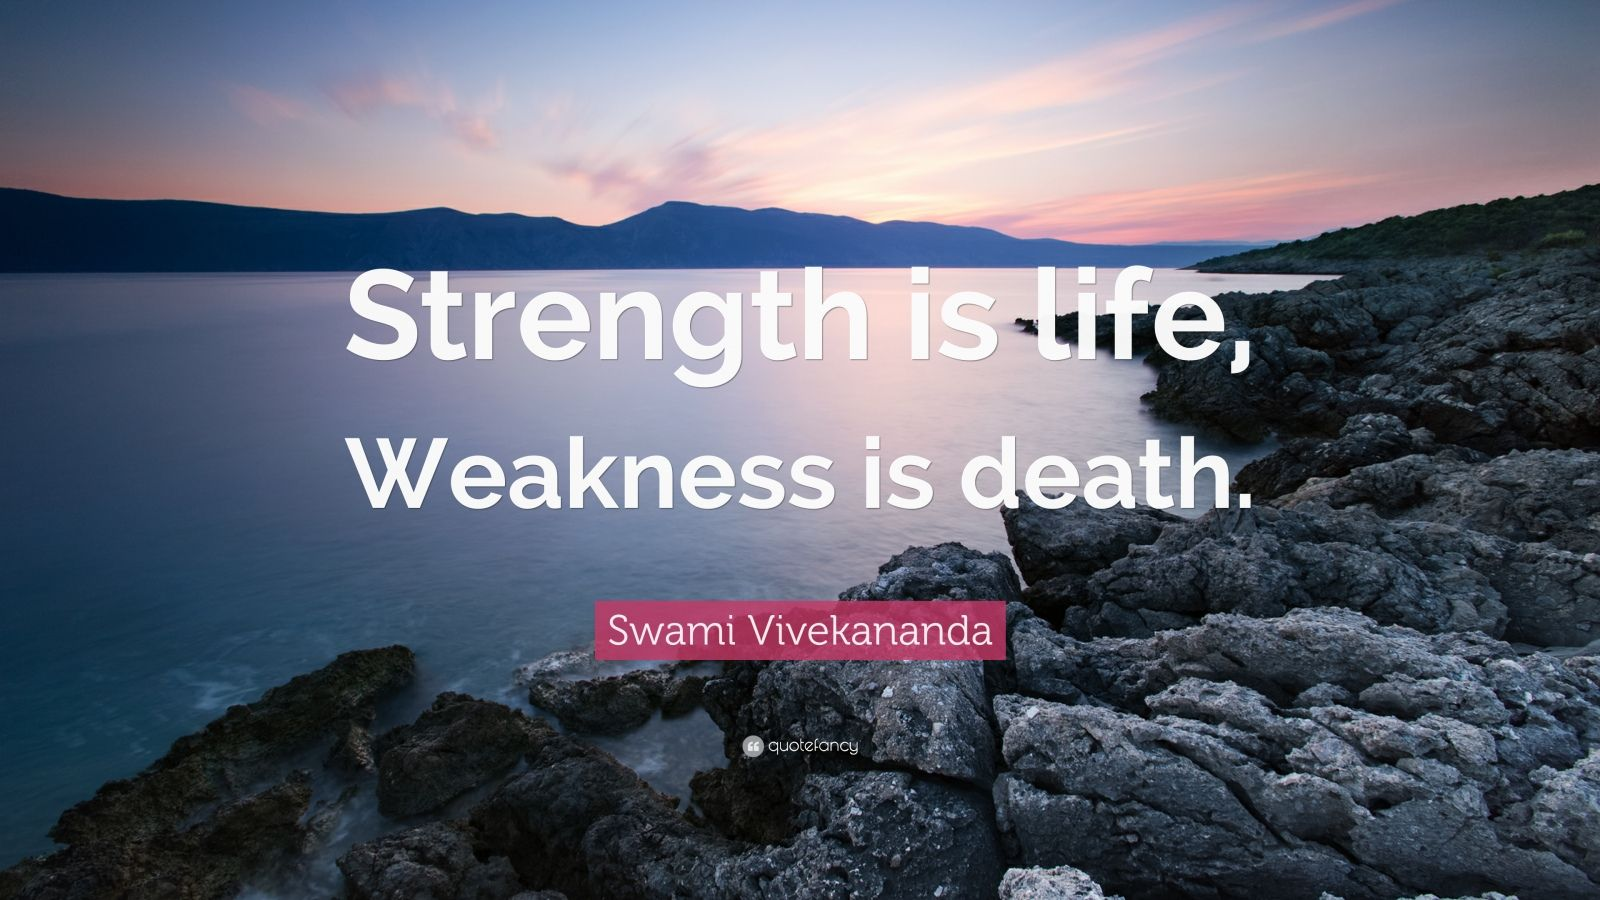 Famous Quotes About Life And Death Swami Vivekananda Quotes 100 Wallpapers  Quotefancy